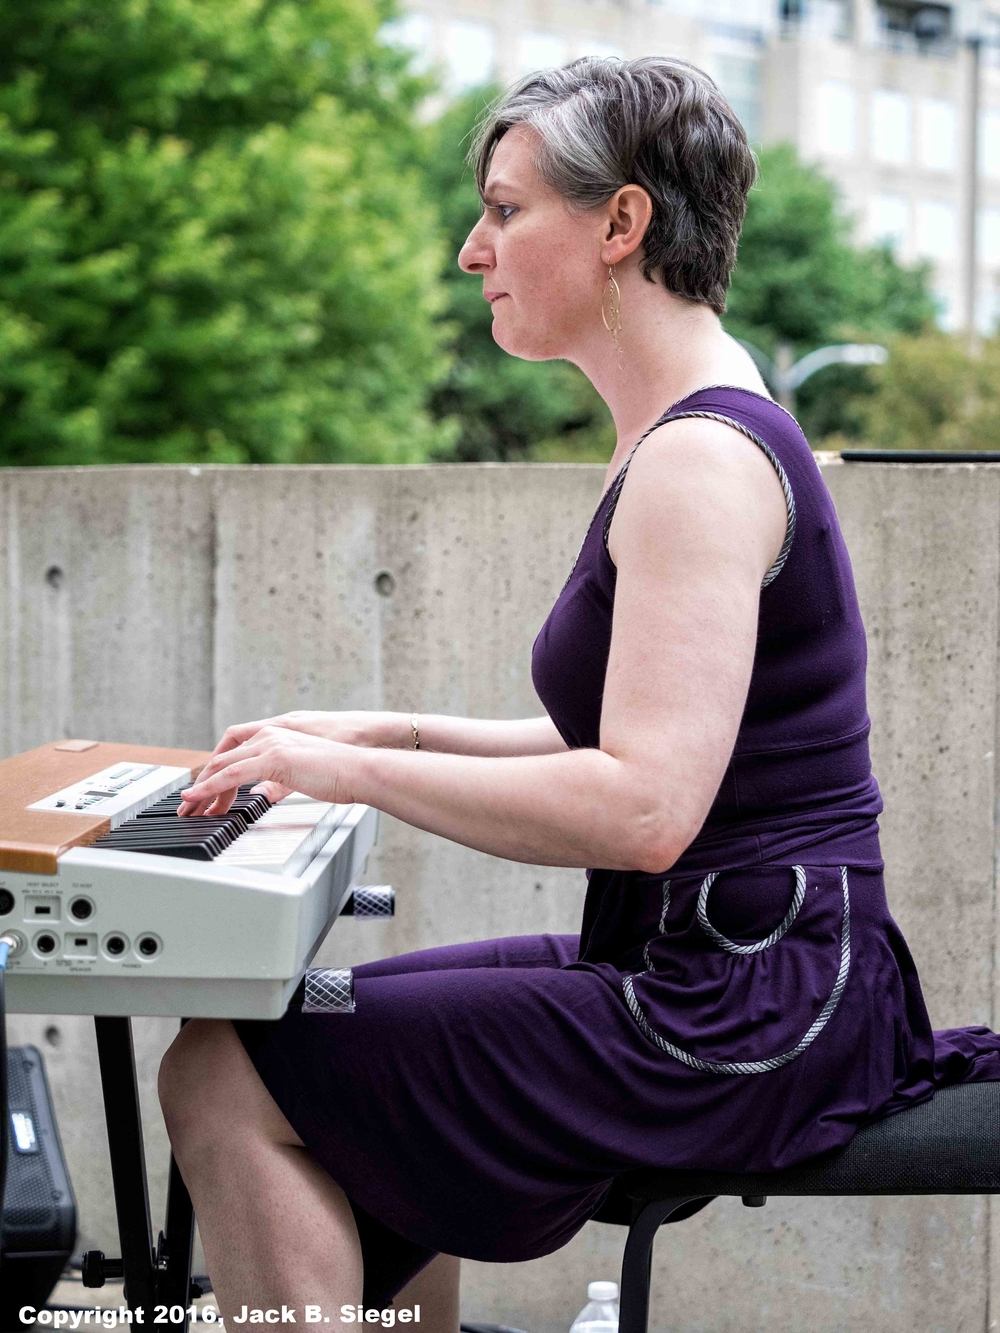 Lisa Kaplan on Keyboards